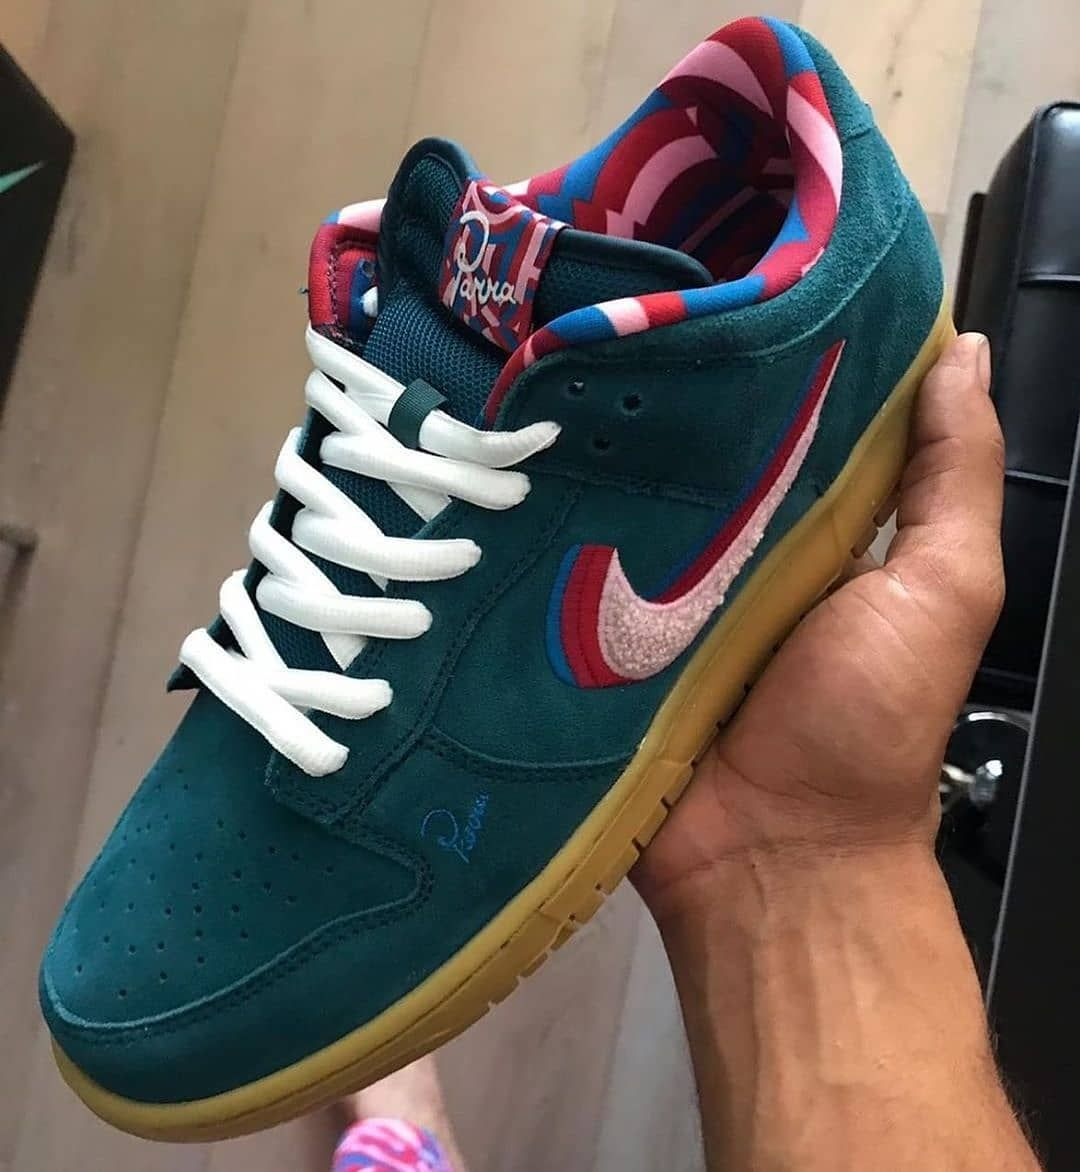 Sneakerjagers On Instagram This Picture Just Surfaced Another Edition Of The Nike Sb Dunk Low Parra This Colorway Is Probably The Friends Zapatillas Tenis